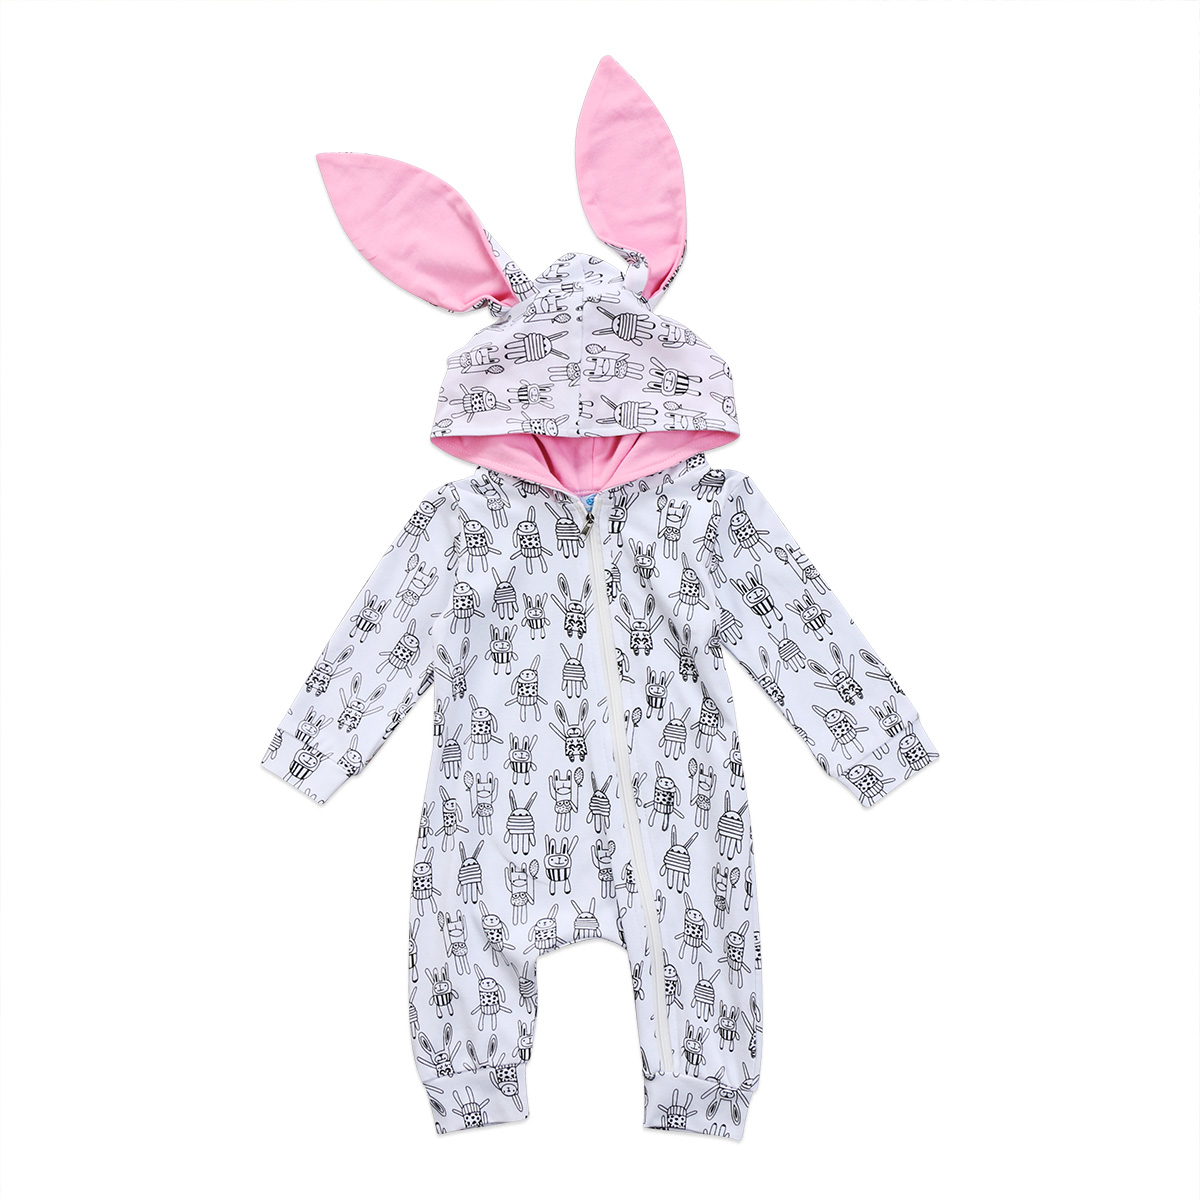 2017 Hot Bunny Long Ear Zipper Newborn Baby Girls Boys Rabbit Ears Romper Jumpsuit Outfits